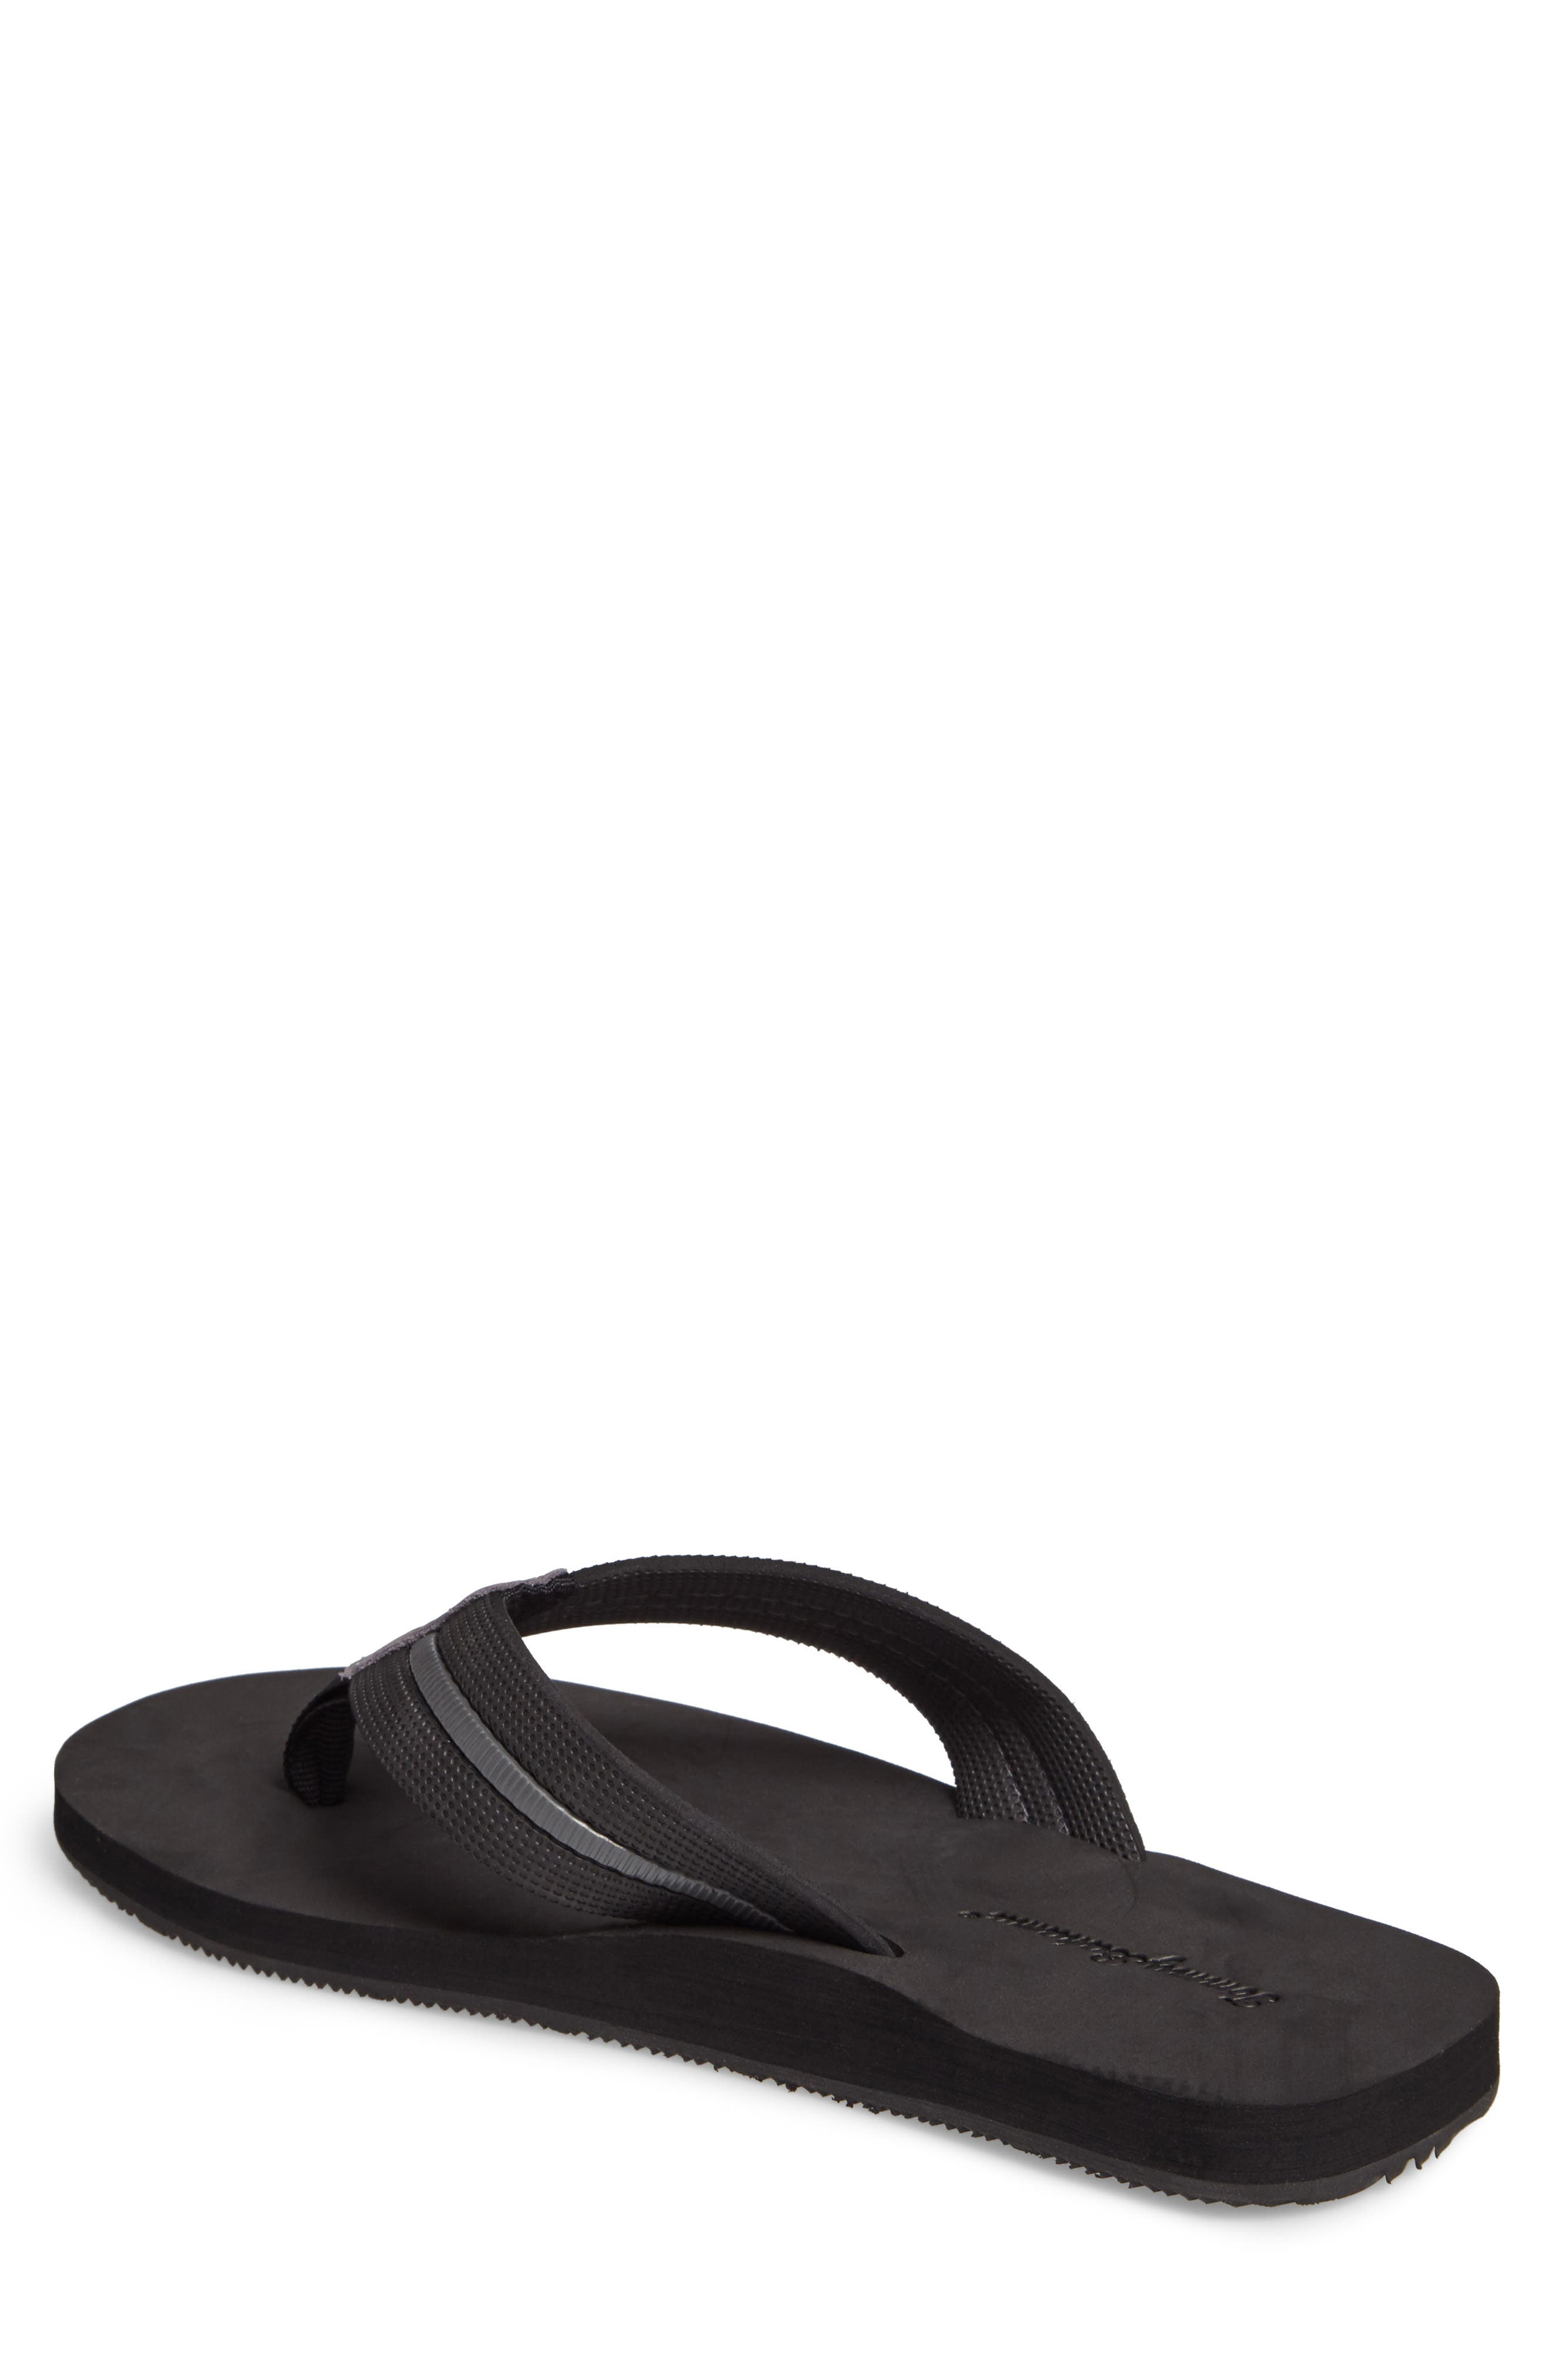 Taheeti Flip Flop,                             Alternate thumbnail 2, color,                             BLACK